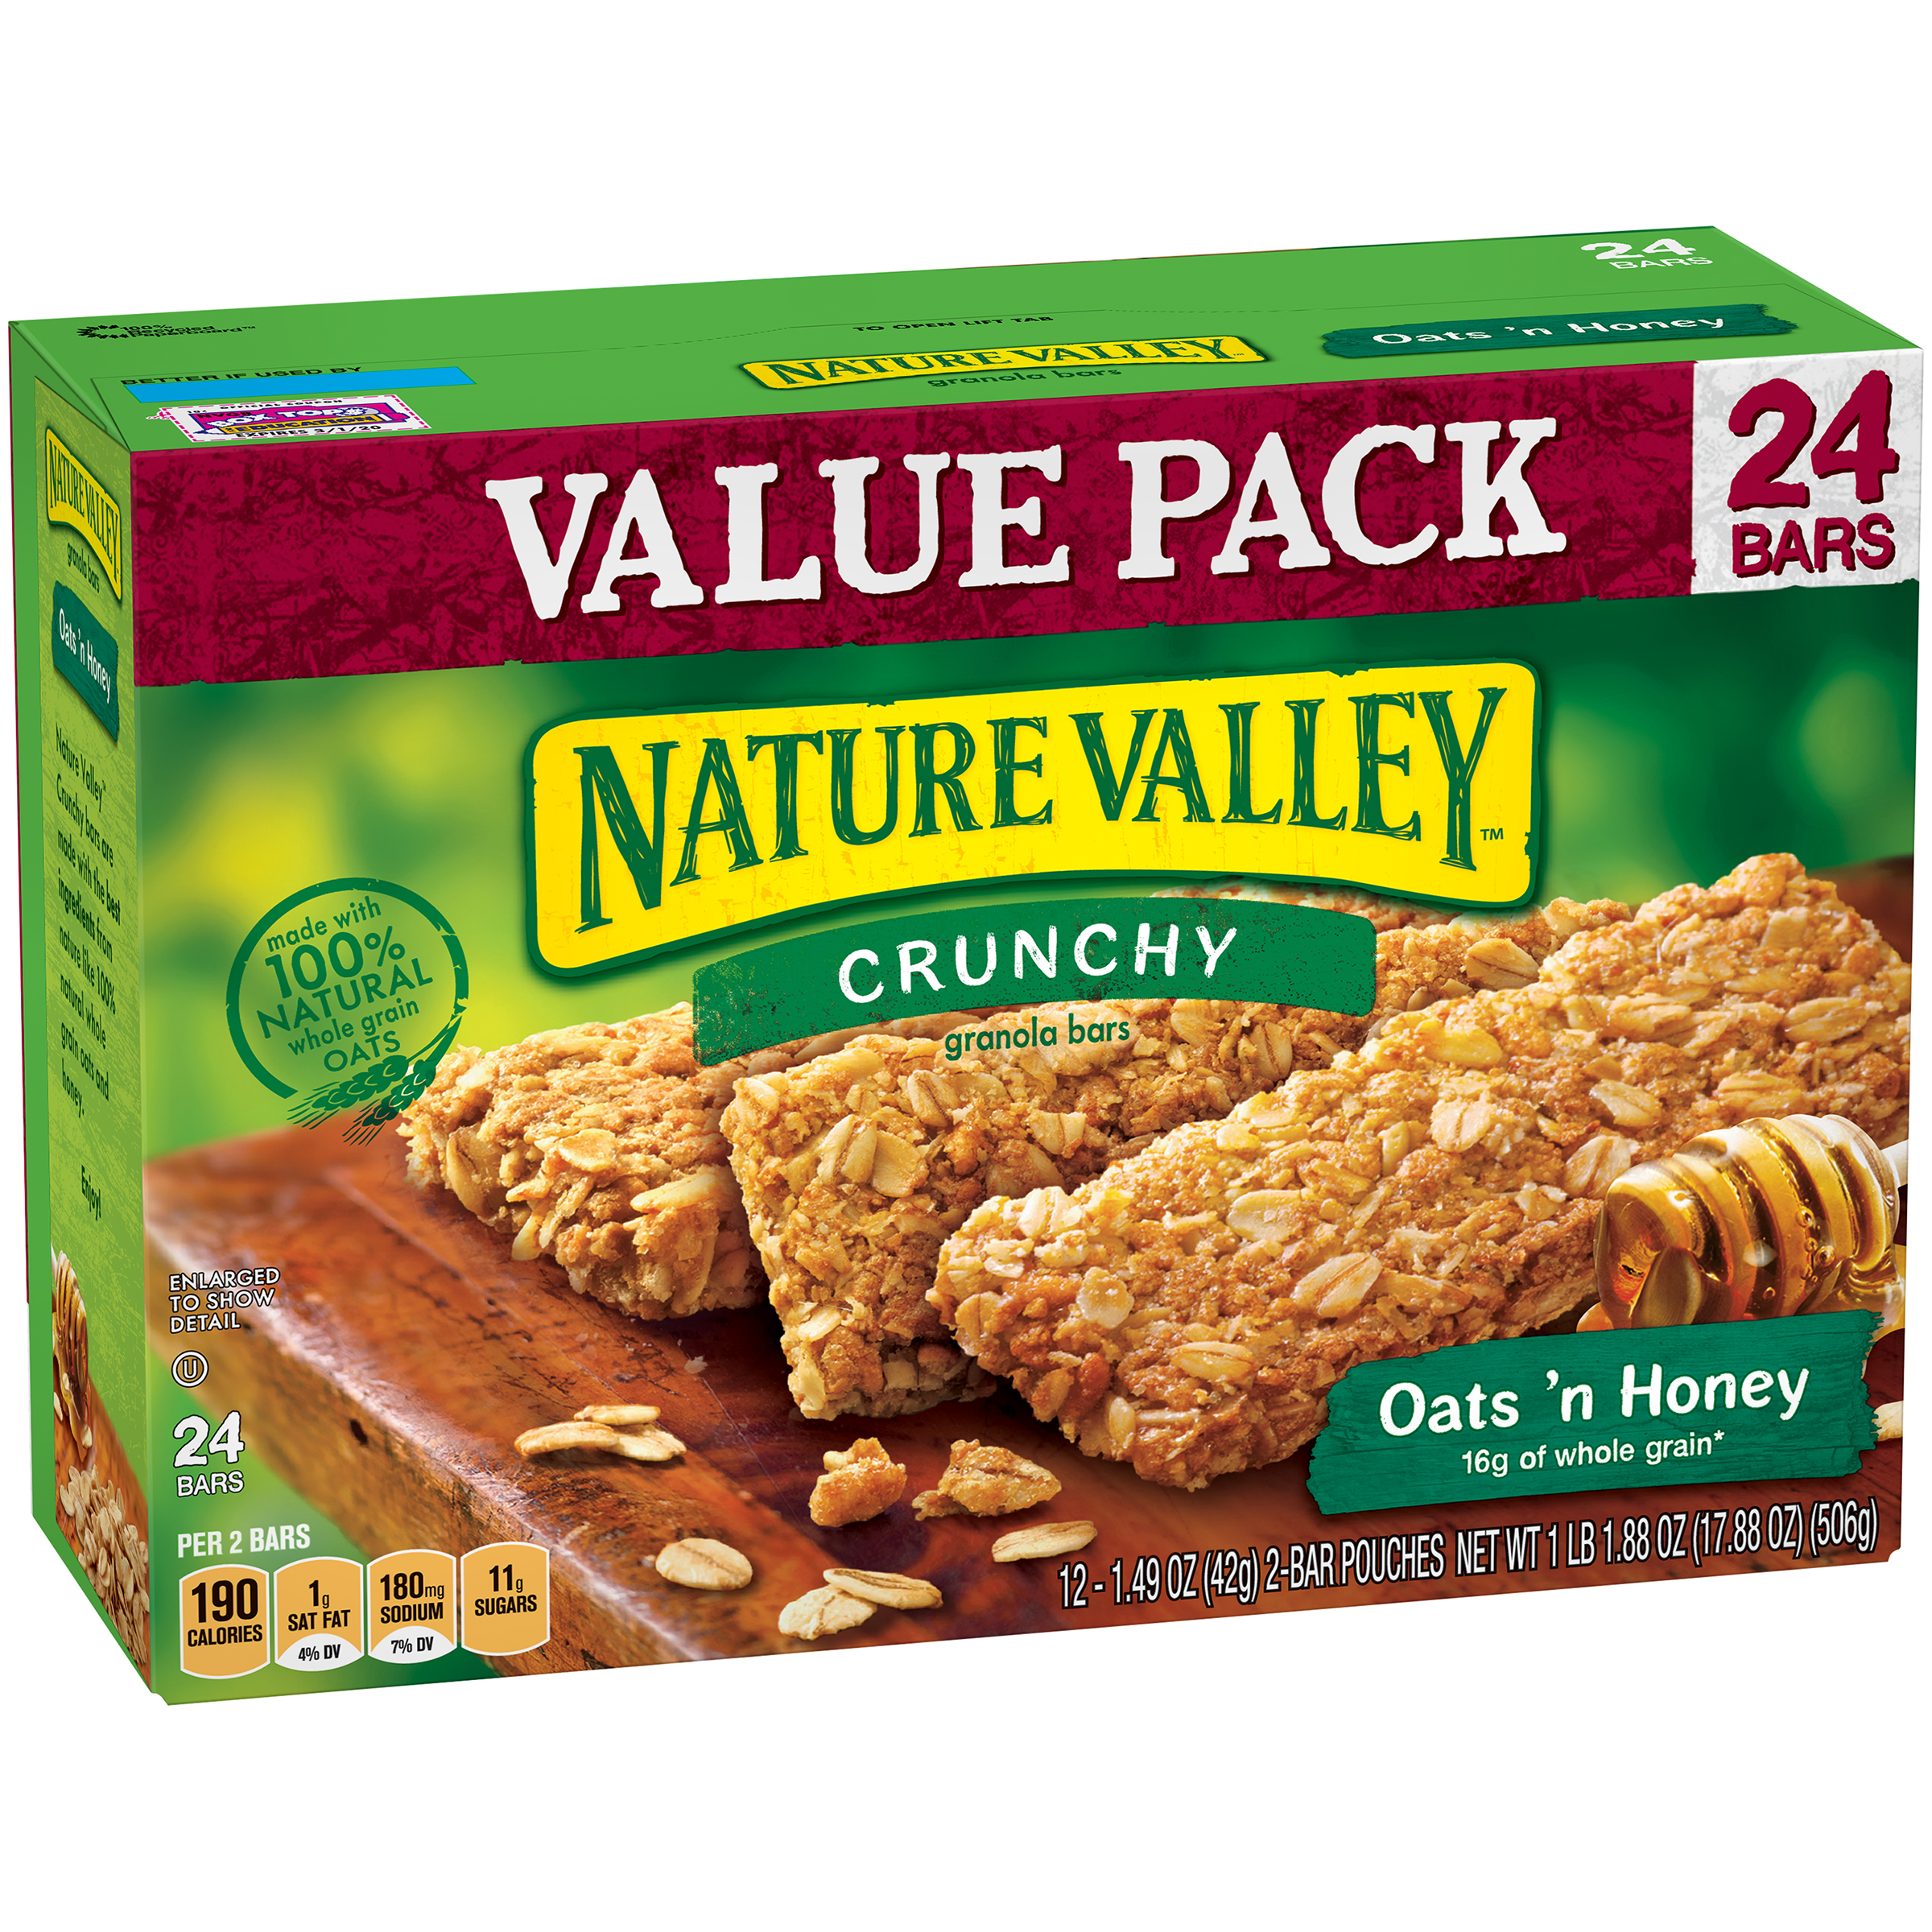 I really like most Nature Valley granola bars, and these are no exception. I was looking for a mostly healthy granola bar with extra protein. I initially bought a box of these and a box of another brand of oatmeal raisin bars.